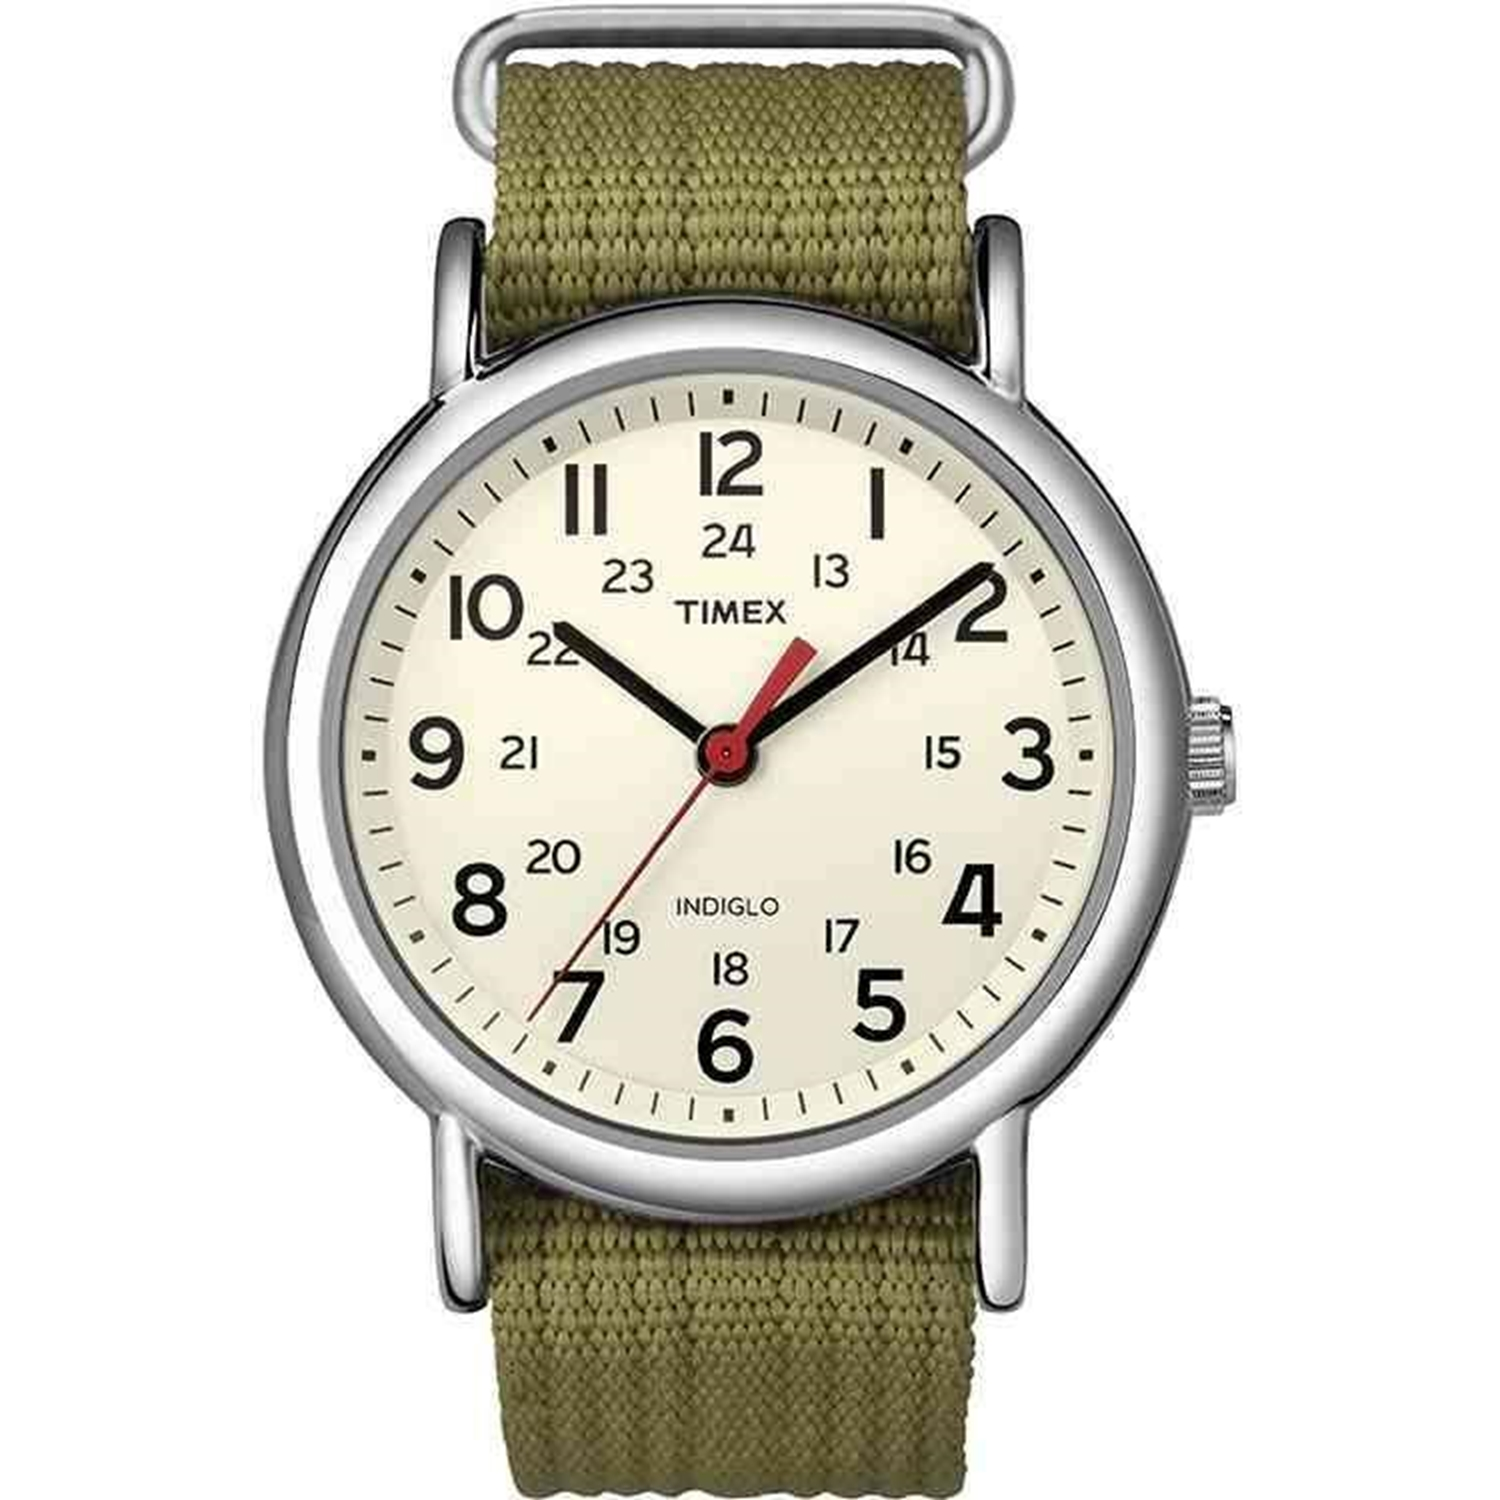 Timex Men's Weekender T2N651 White Nylon Analog Quartz Watch